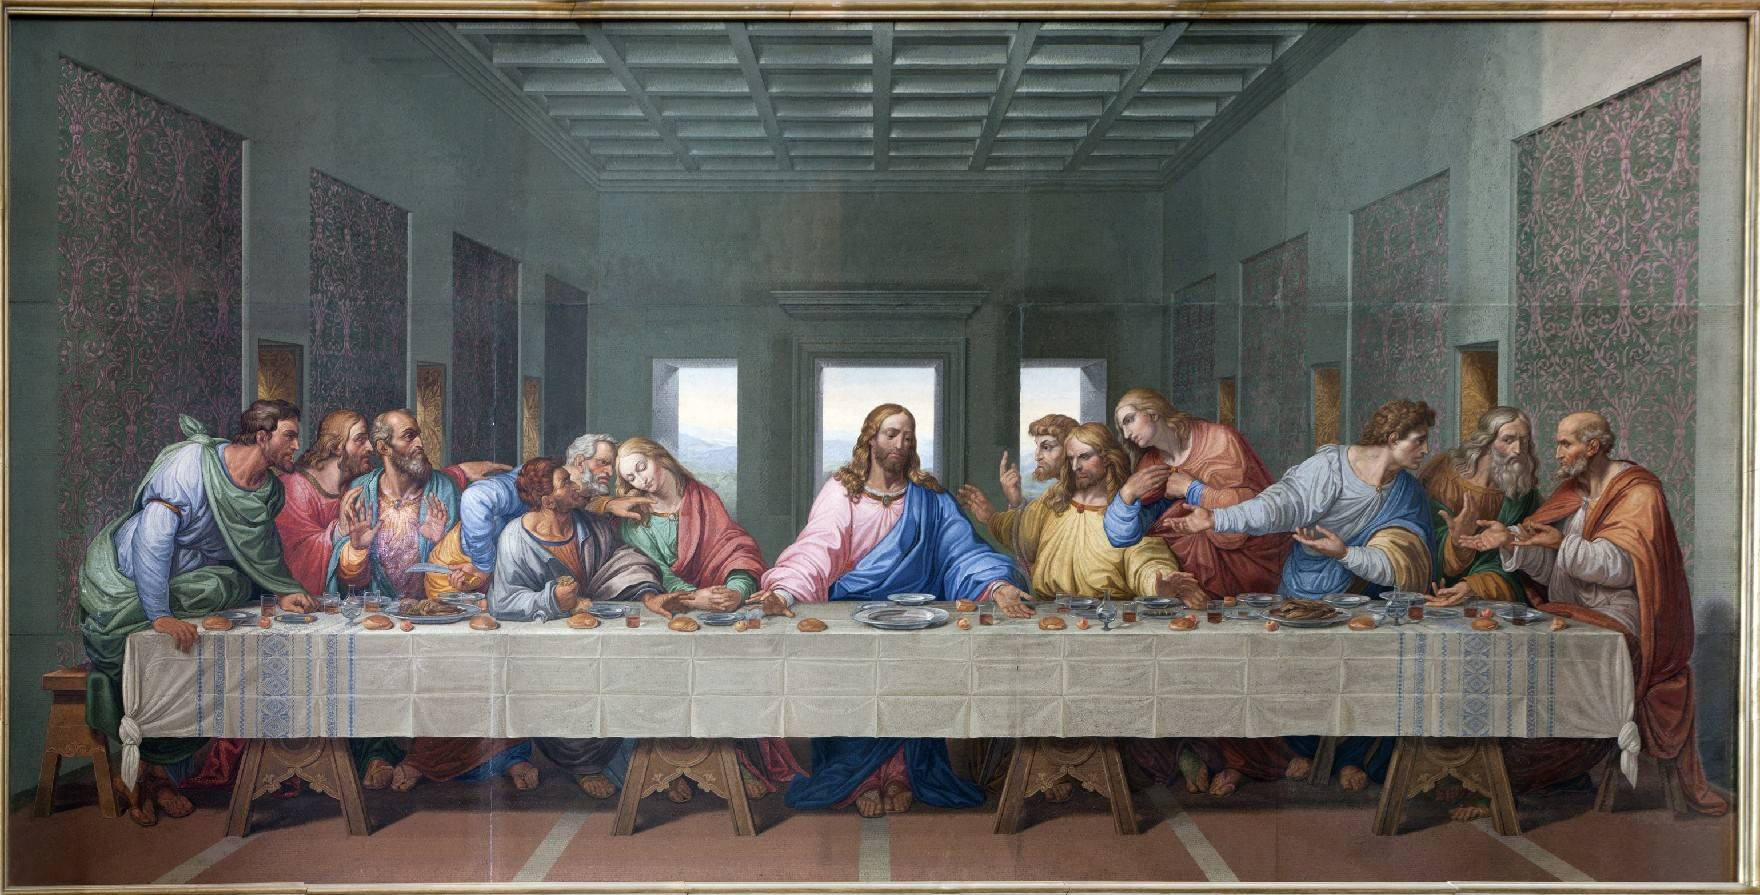 Adorable 60+ The Last Supper Wall Art Design Decoration Of Last Regarding Latest Last Supper Wall Art (View 5 of 20)